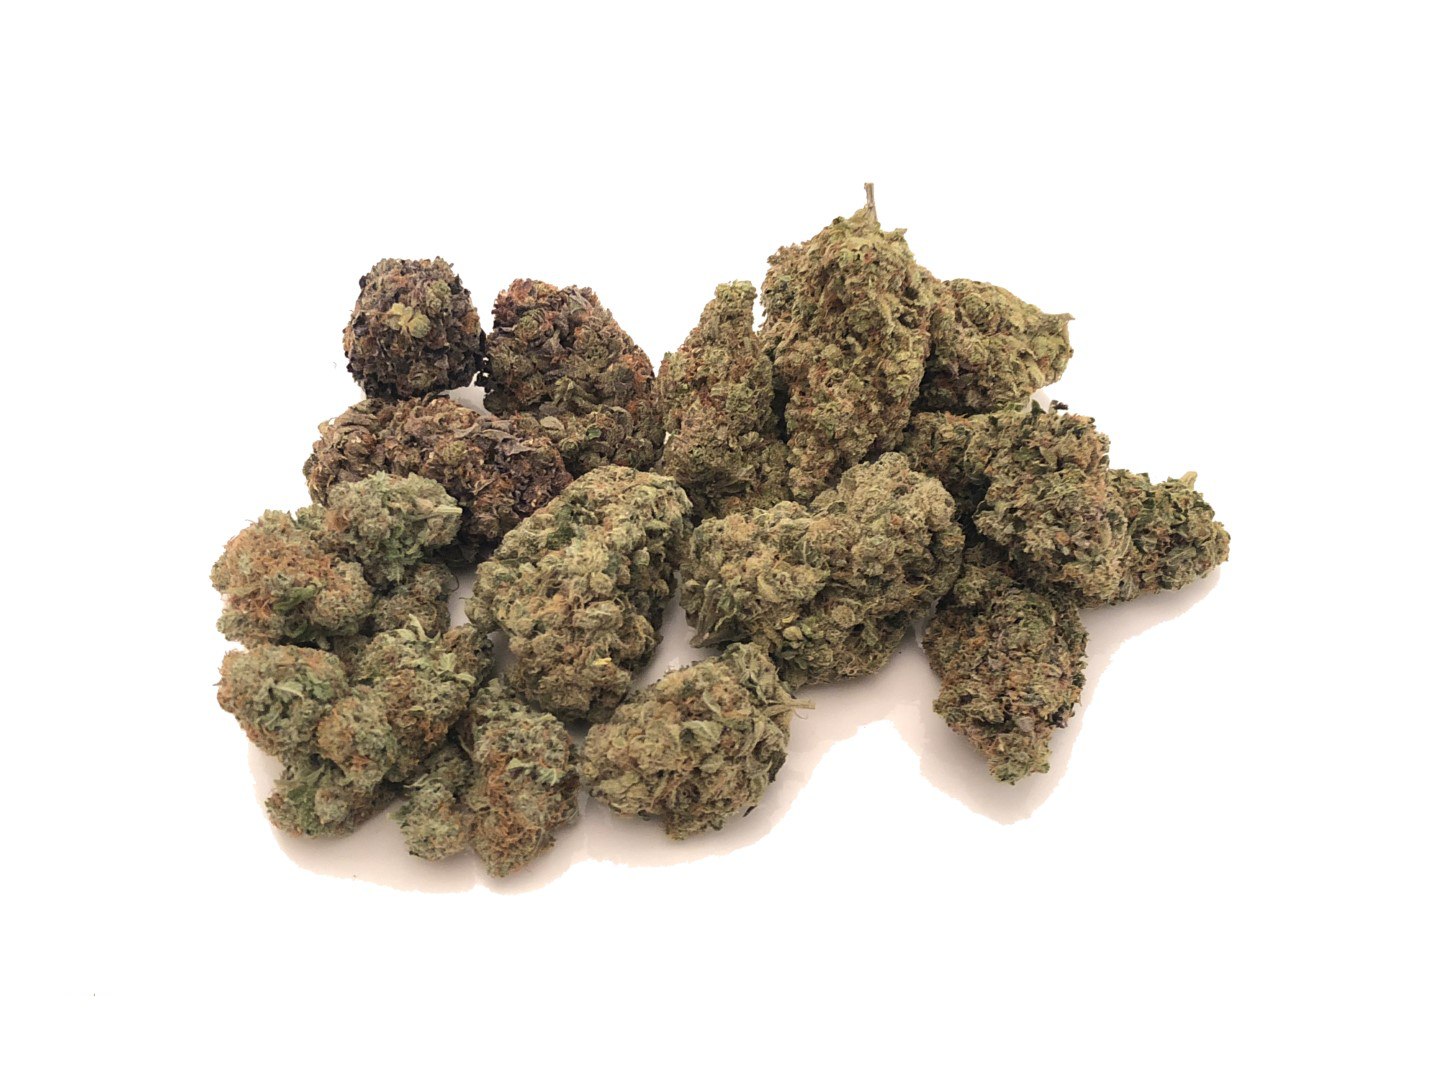 Mixed buds